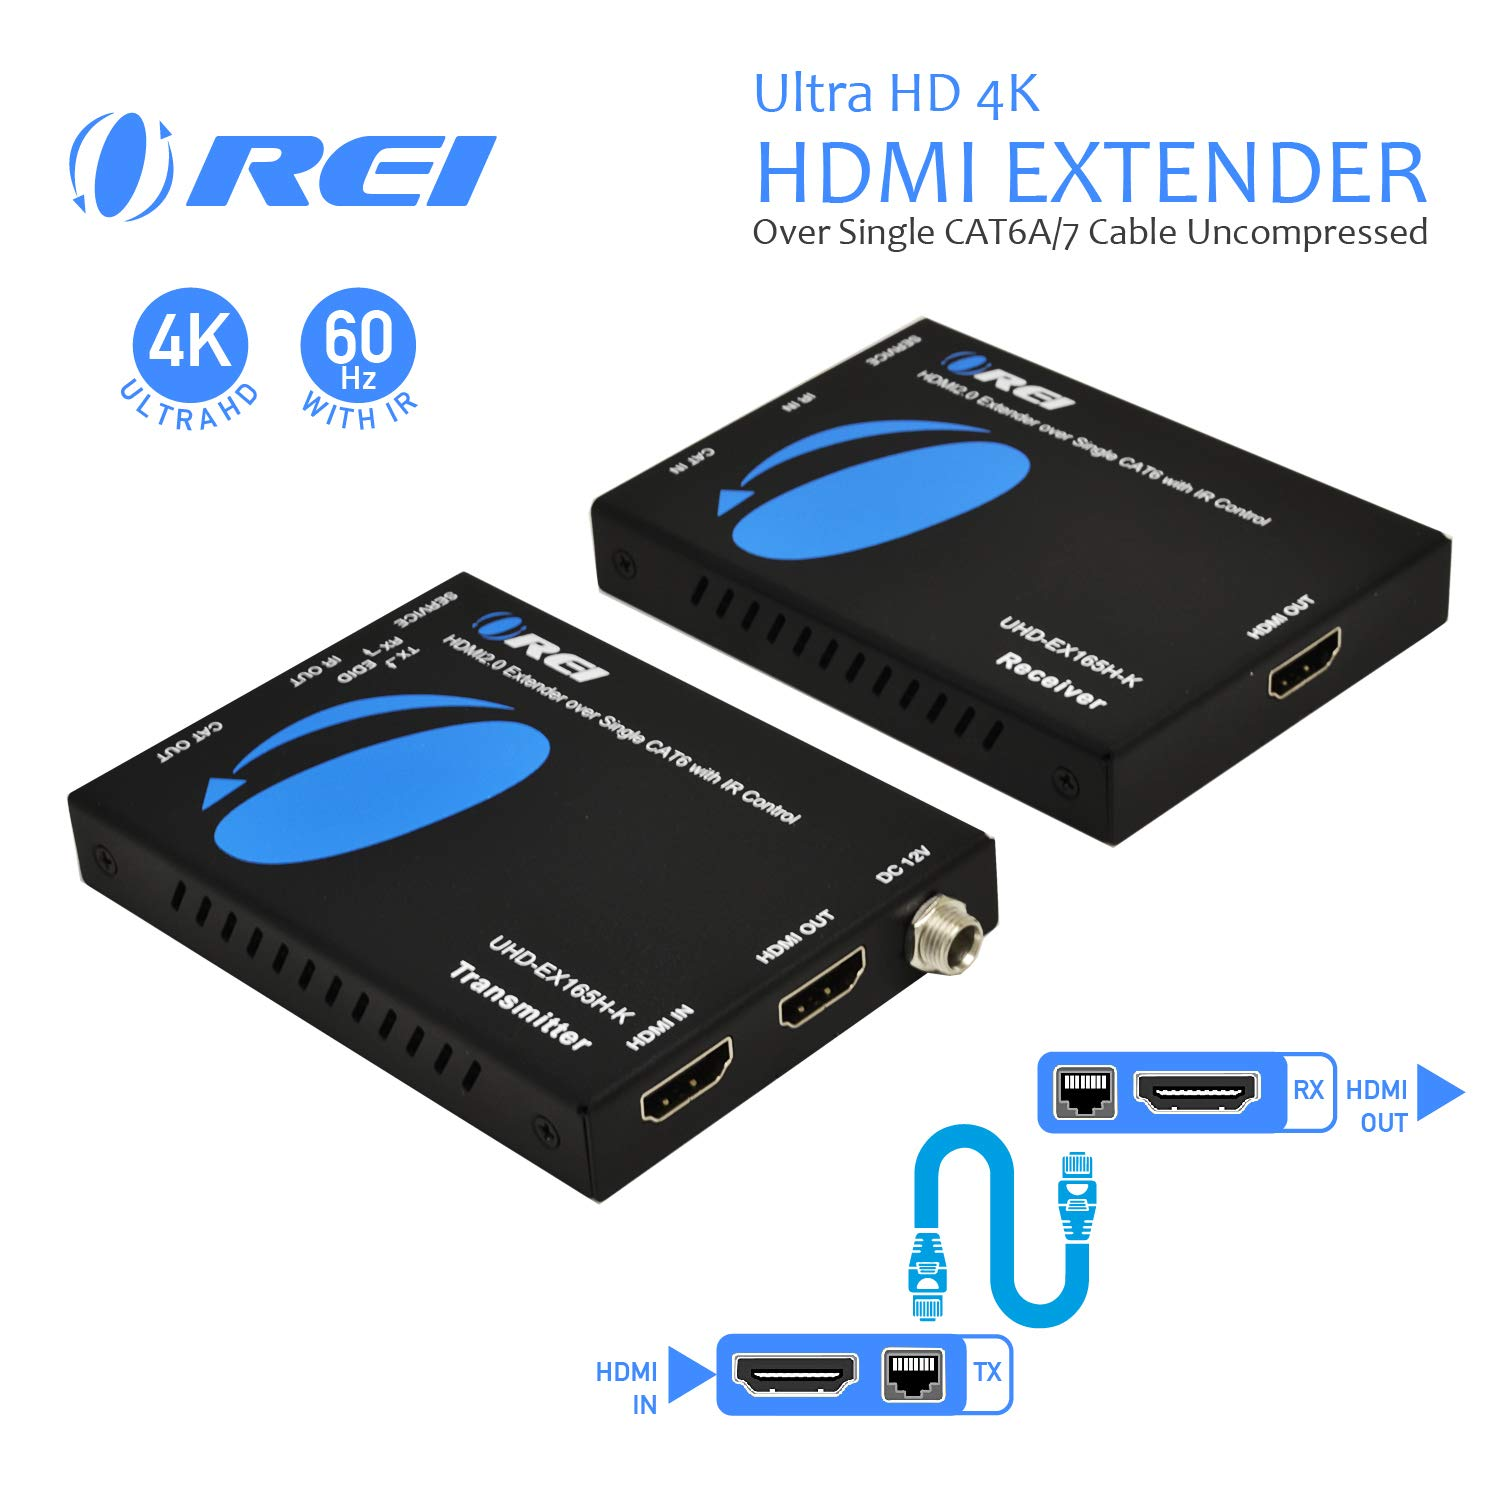 Orei HDMI Extender UltraHD Over Single Cat6/Cat7 Cable 4K @ 60Hz with HDR & IR Control - Up to 165 ft EDID Management by Orei